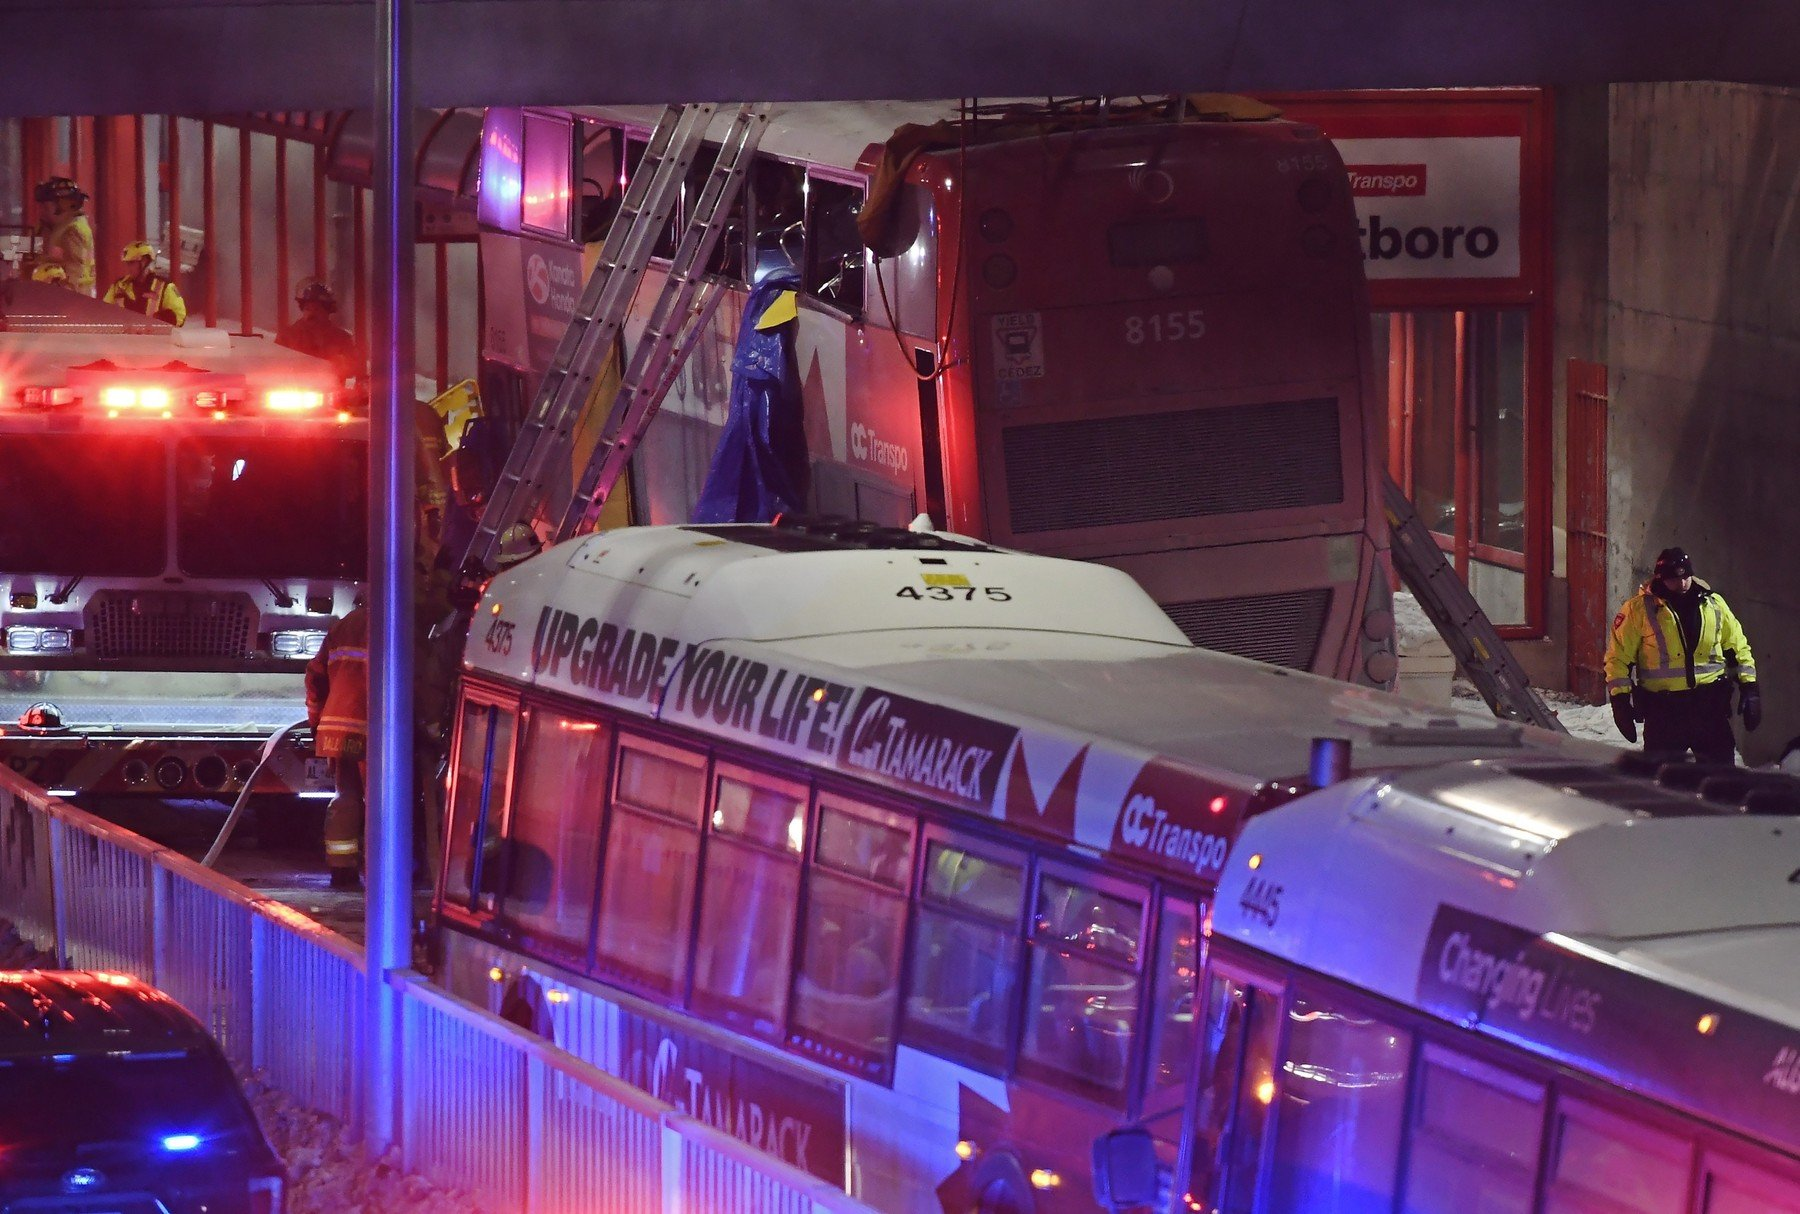 January 11, 2019 - Ottawa, on, Canada - Police and first responders work at the scene where a double-decker city bus struck a transit shelter in Ottawa, on Friday, Jan. 11, 2019., Image: 406711589, License: Rights-managed, Restrictions: * Canada and U.S. RIGHTS OUT *, Model Release: no, Credit line: Profimedia, Zuma Press - News